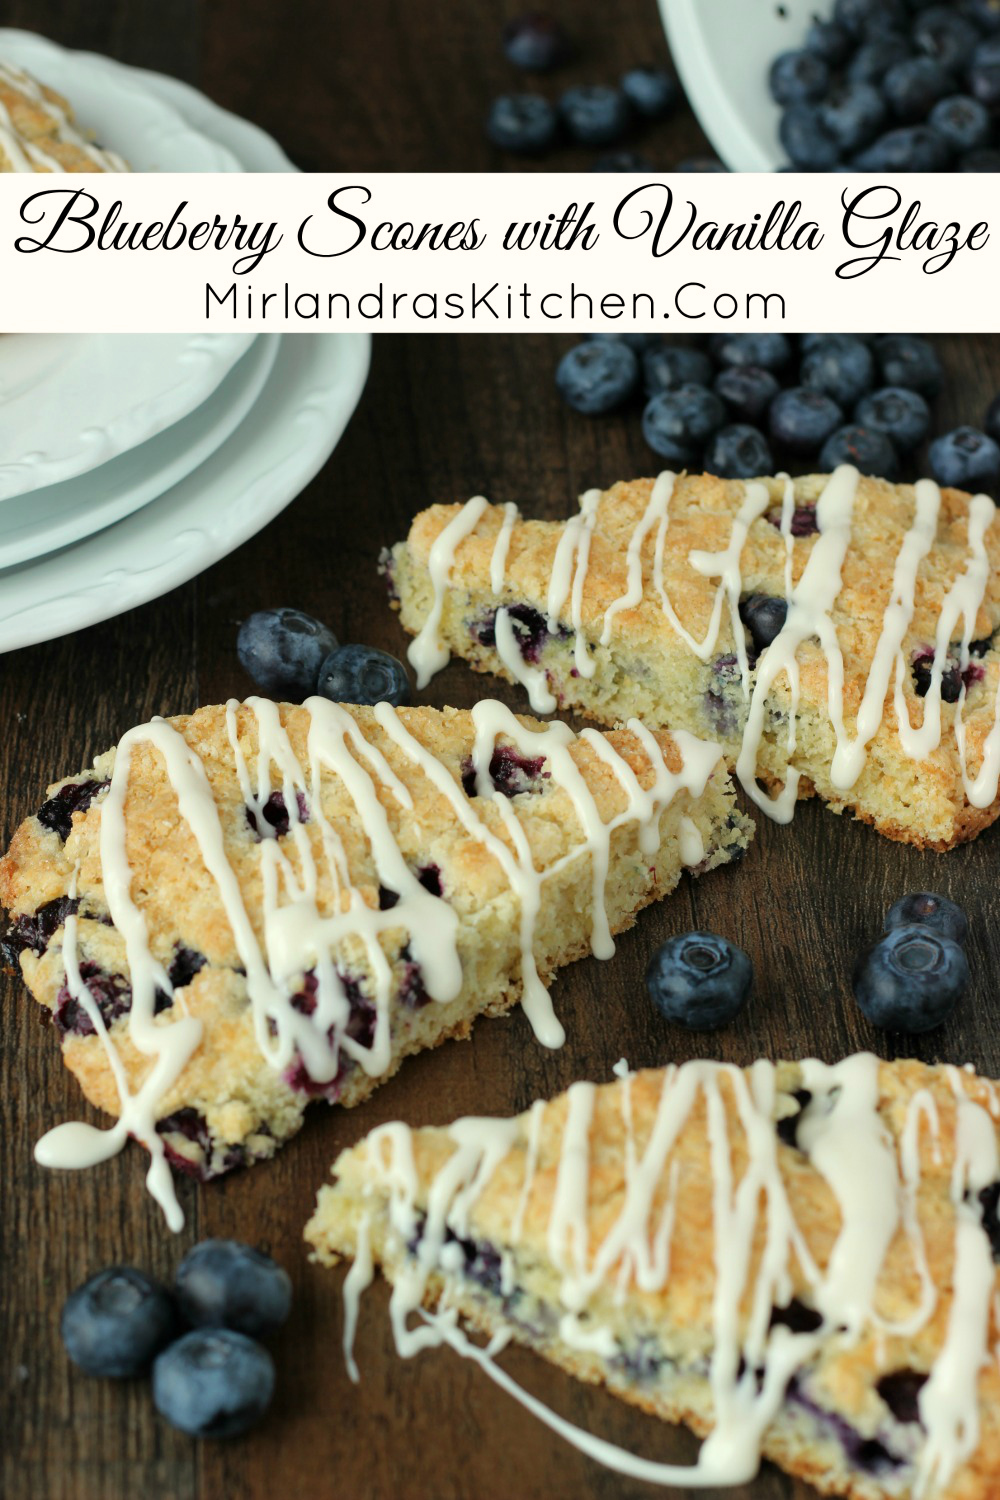 Tender blueberry scones with a crunchy top and creamy vanilla glaze. You won't be able to resist this warm, buttery treat full of berries. They are a perfect mid-winter pick-me-up or a glorious summer treat.